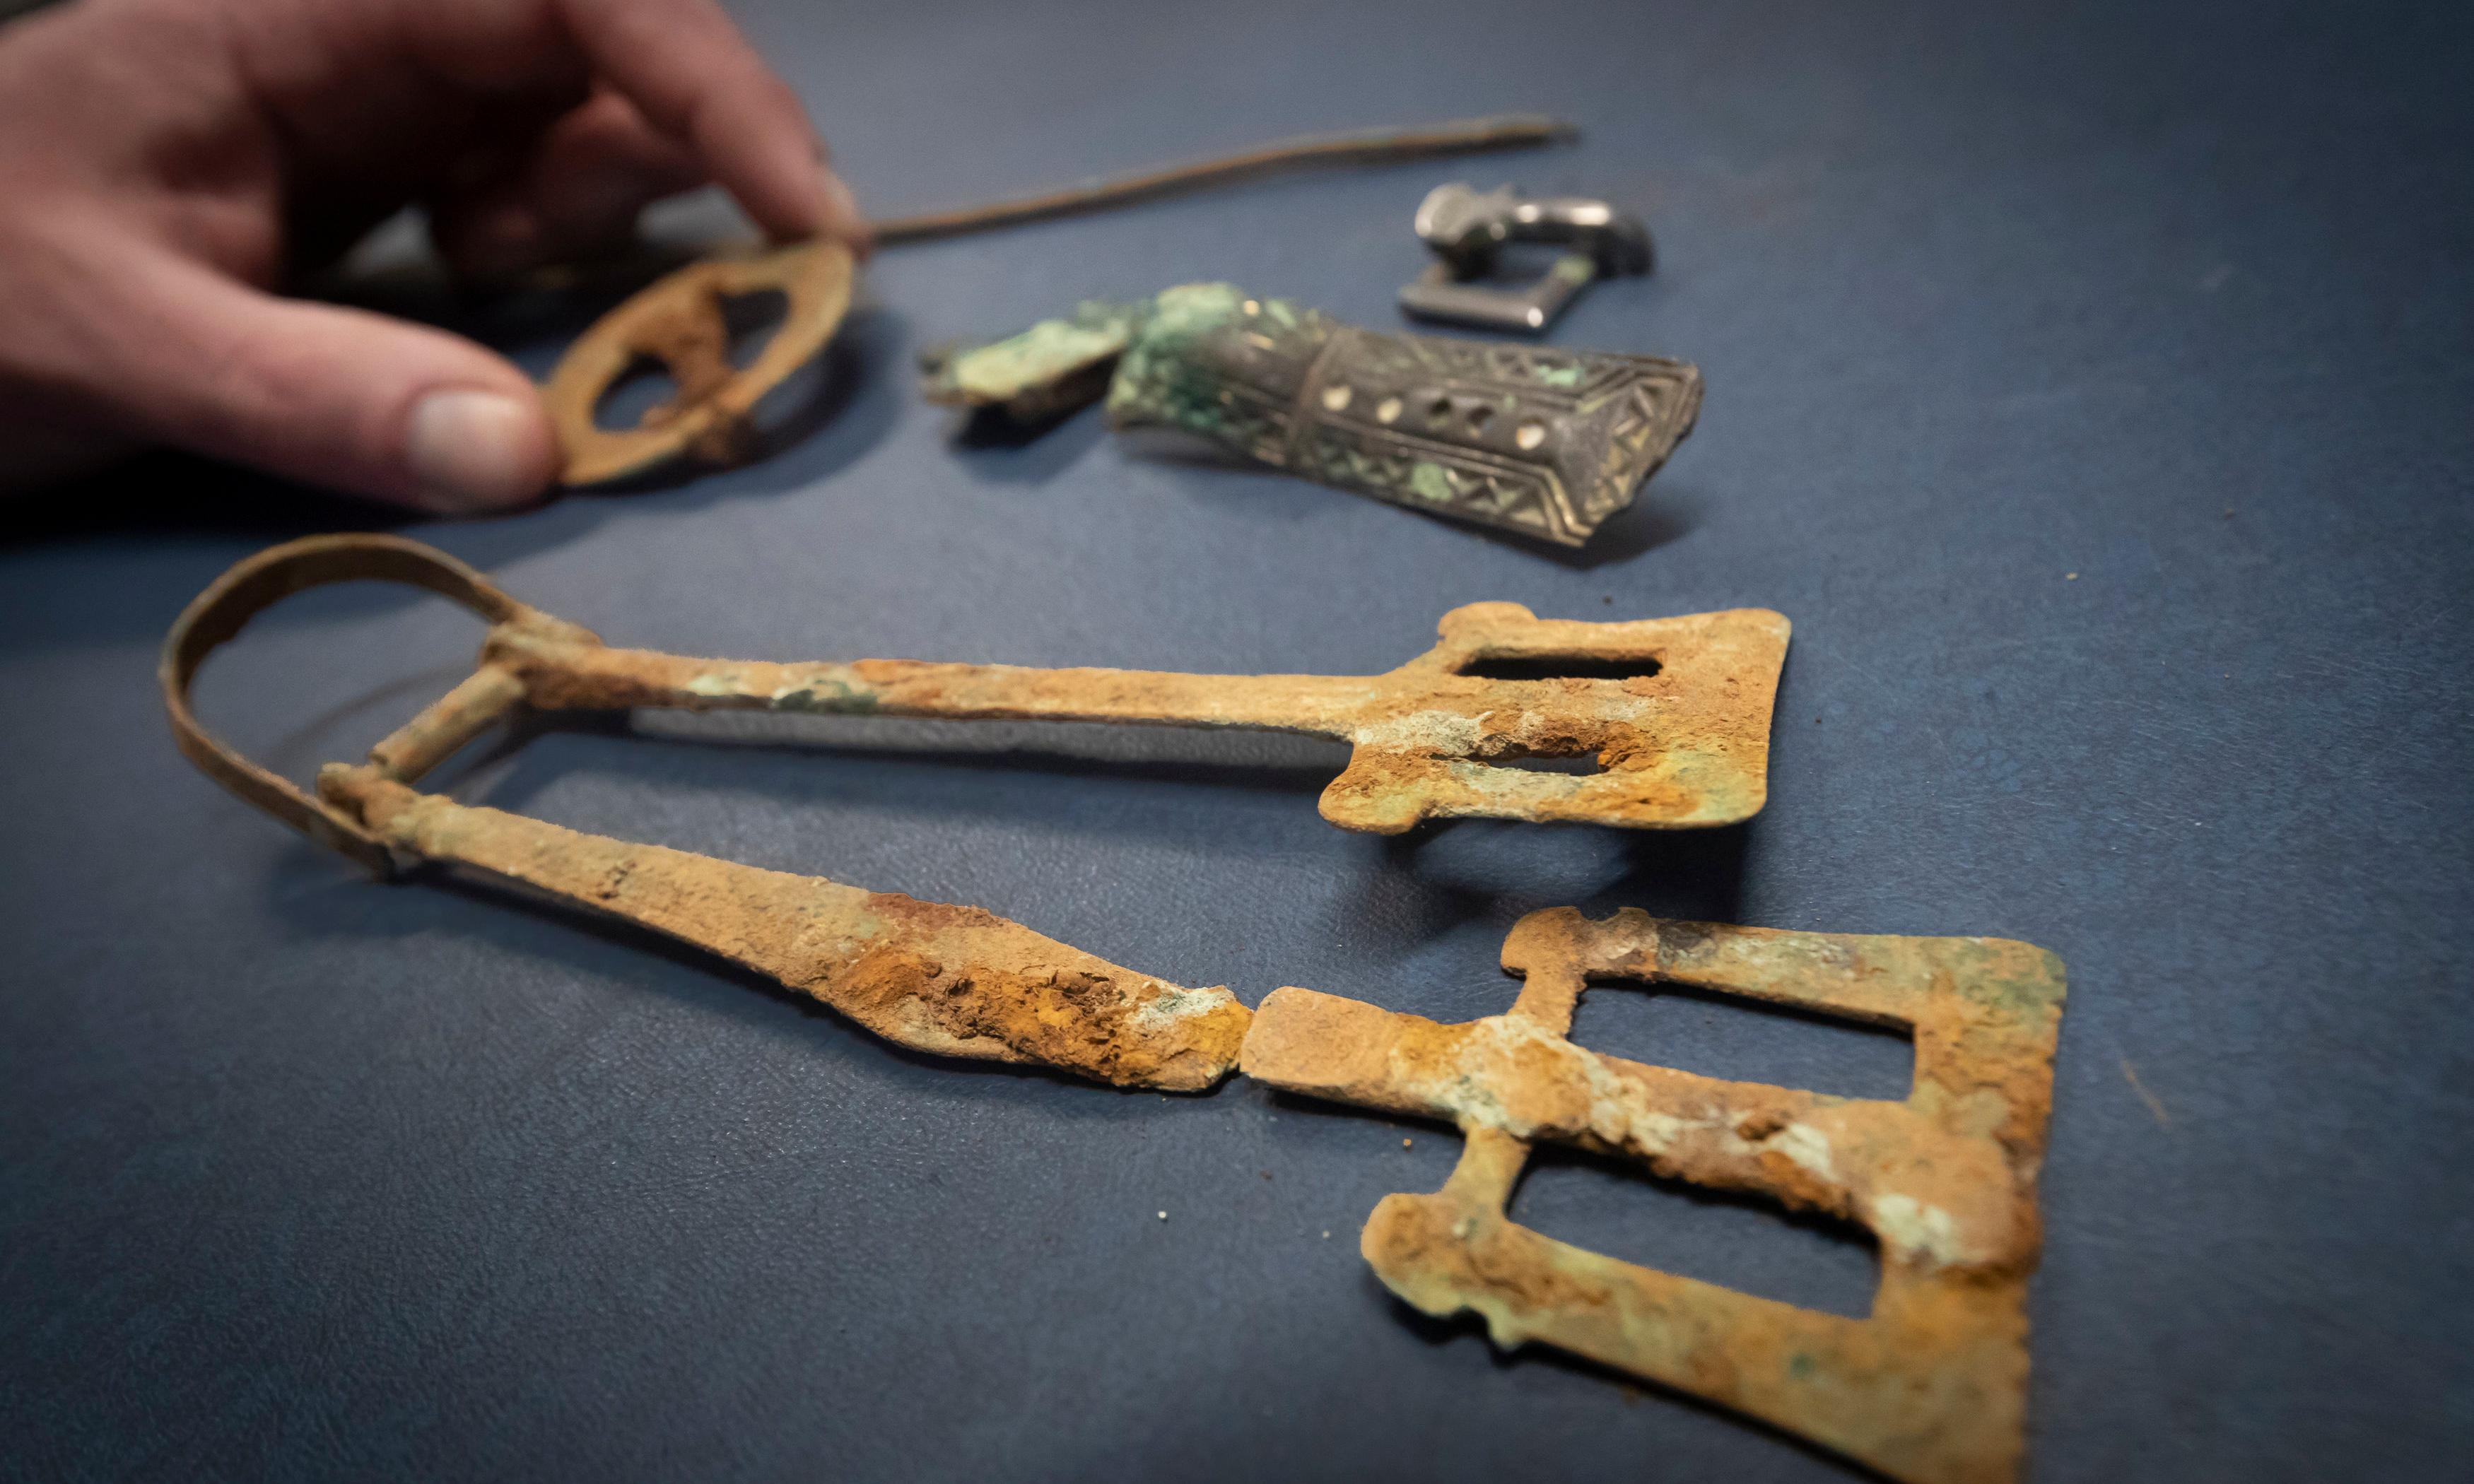 Burial sites from 5th and 6th centuries yield unexpected treasures